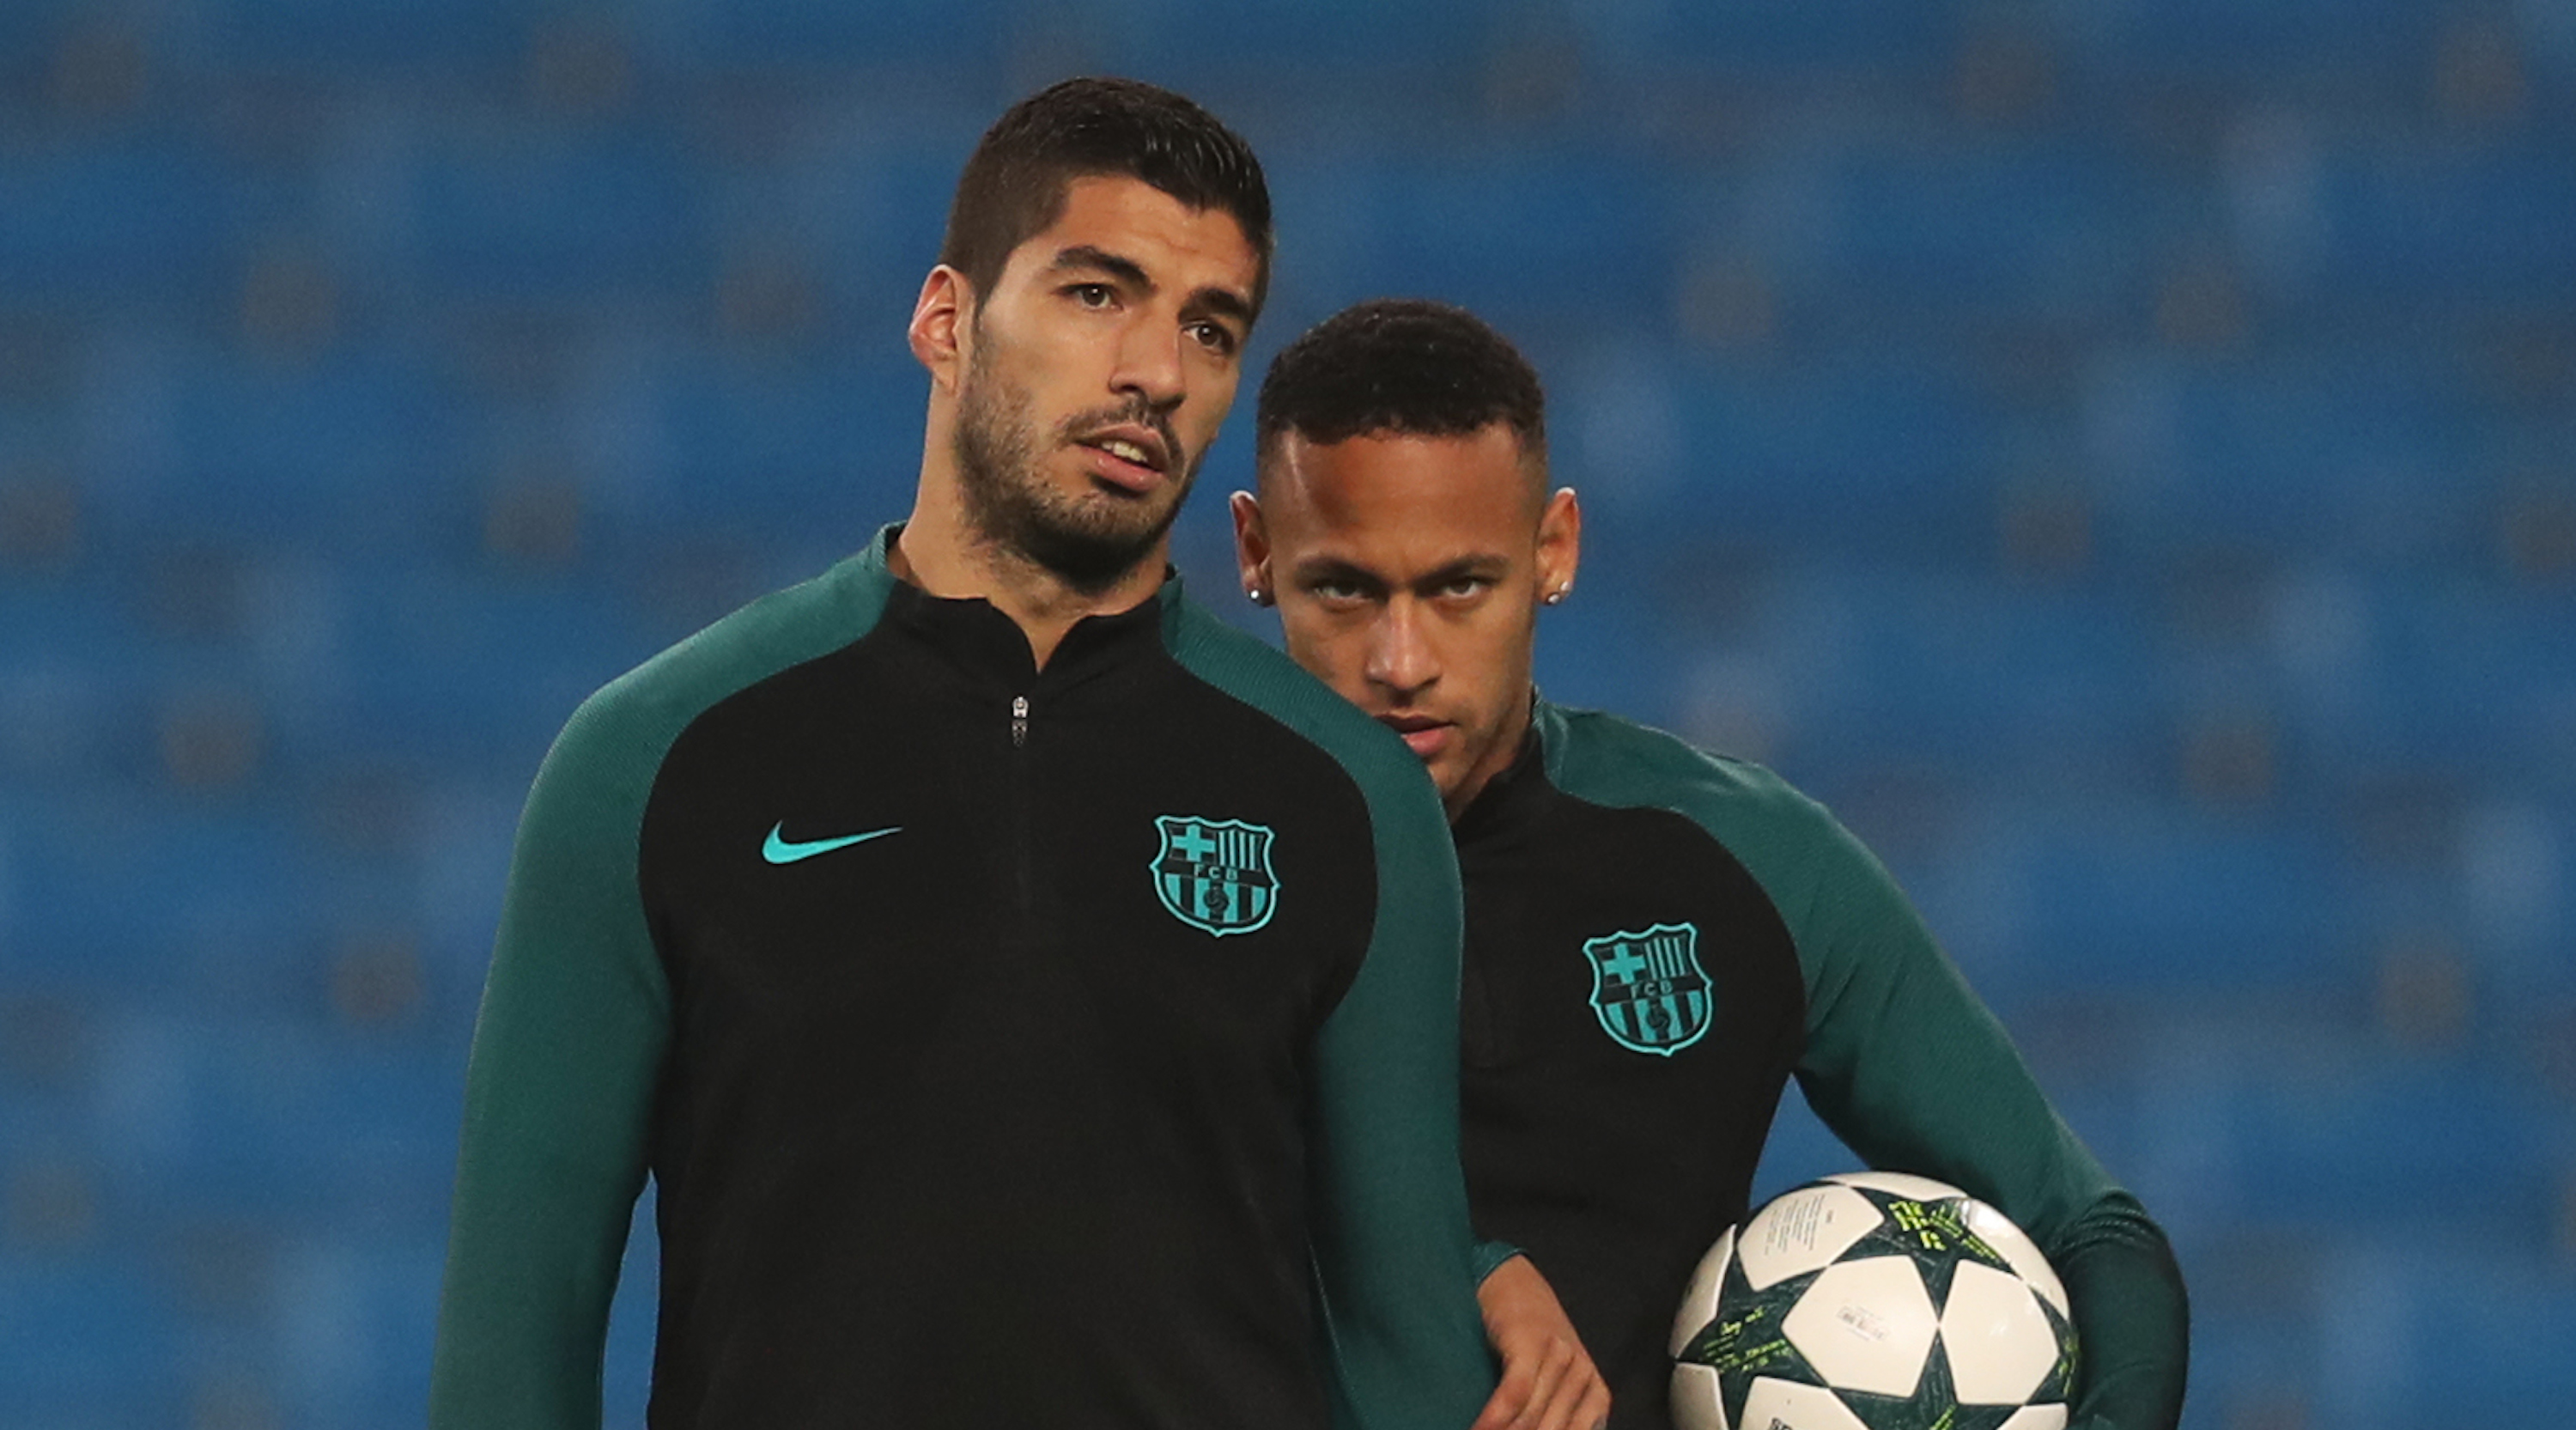 MANCHESTER, ENGLAND - OCTOBER 31: Luis Suarez (L) of Barcelona looks on next to team-mate Neymar during a training session ahead of the UEFA Champions League match between Manchester City and Barcelona at the City Football Academy on October 31, 2016 in Manchester, England. (Photo by Chris Brunskill/Getty Images)